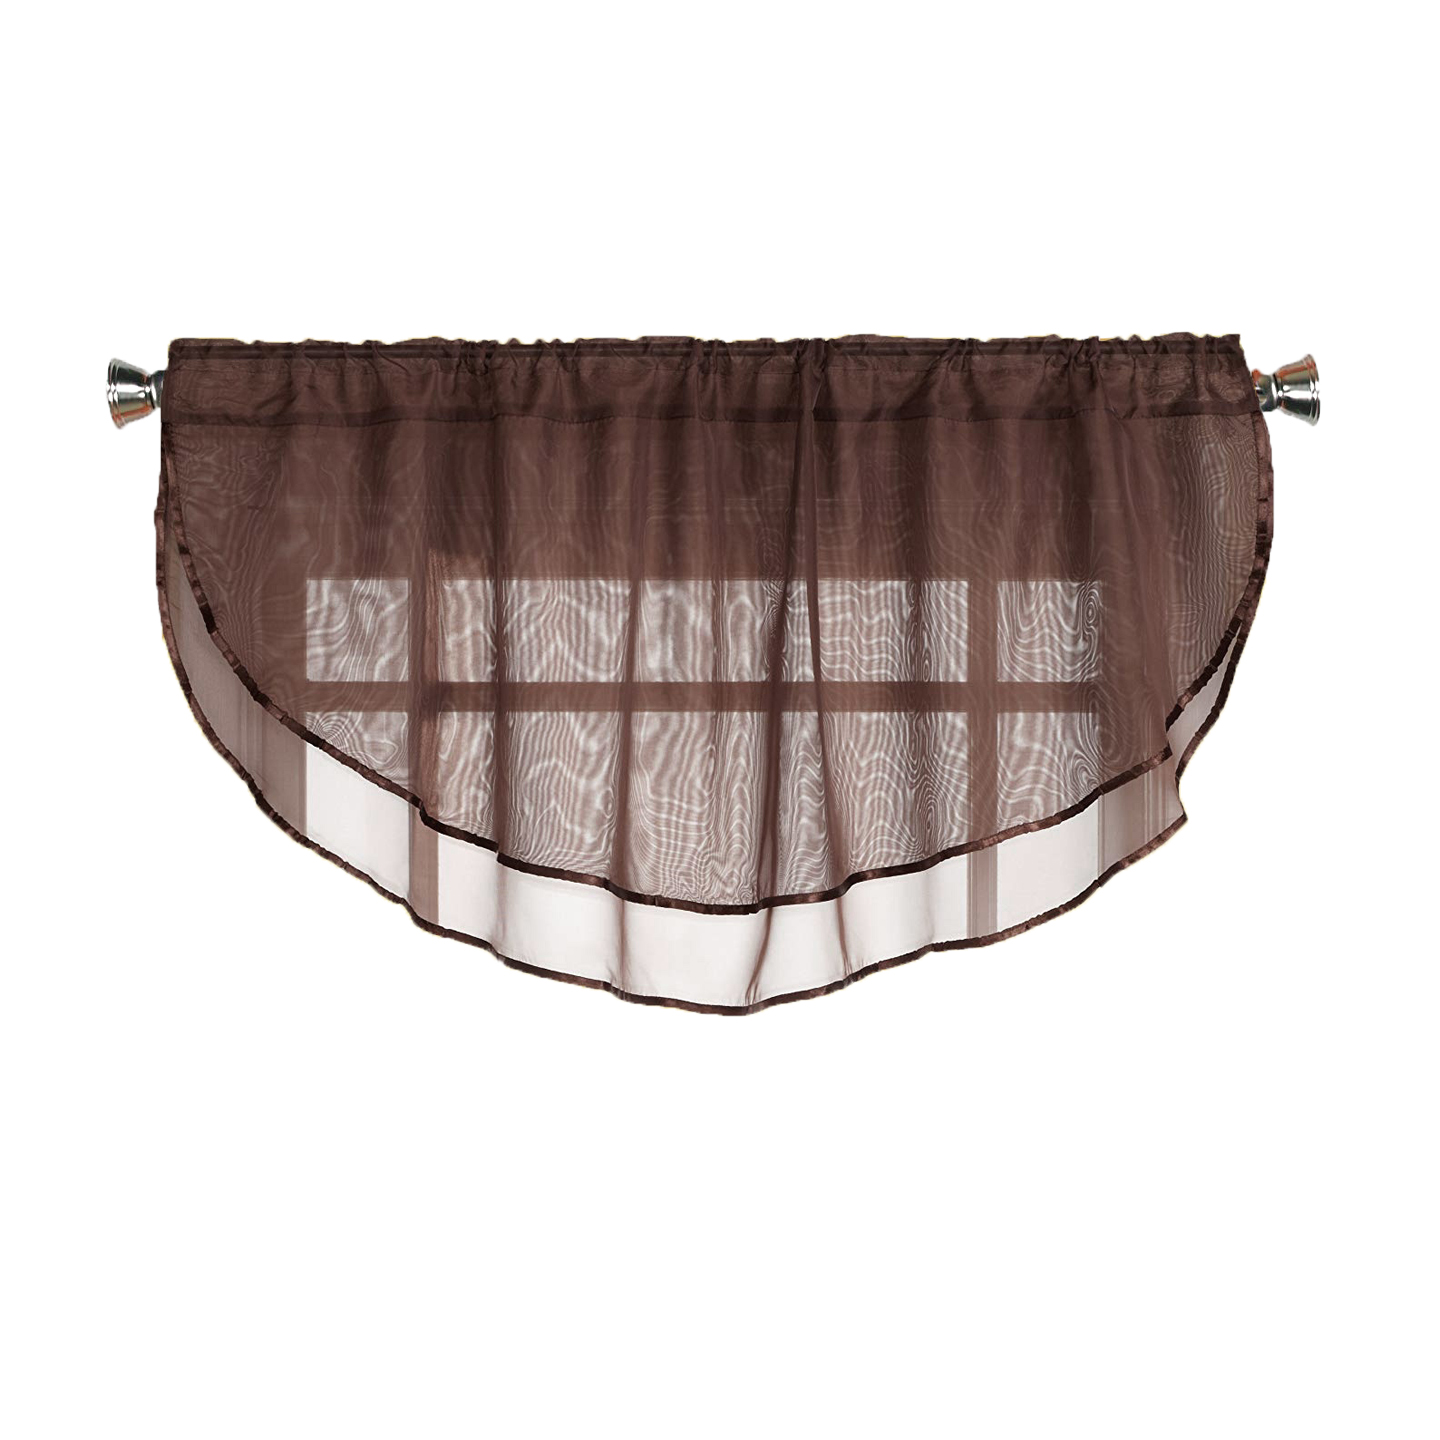 Sheer Voile Valance Curtain for Windows Size 54 in X 24 in ...